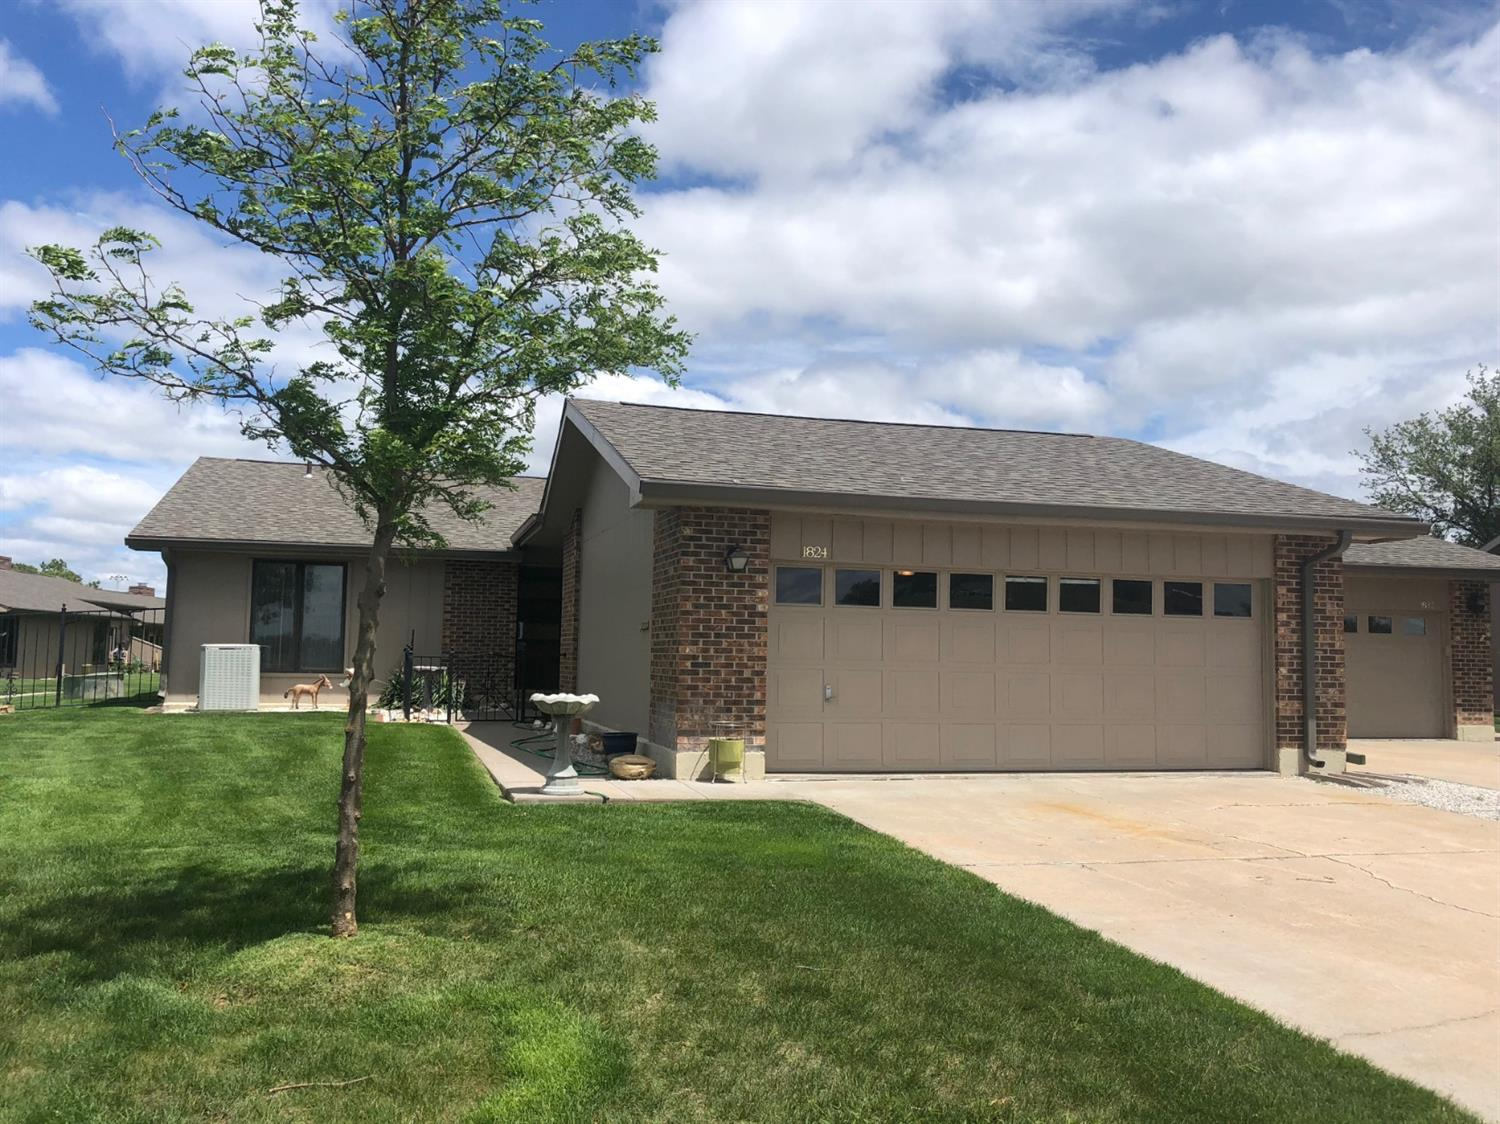 Nice Parkwest Townhouse with formal living room with w/b fireplace, dining room, remodeled kitchen in 2007, 2 bedrooms, 2 bathrooms, Pella windows, CH/CA and D/A garage. HOA covers lawn, snow removal, pool maintenance, trash, termite contract and exterior maintenance.